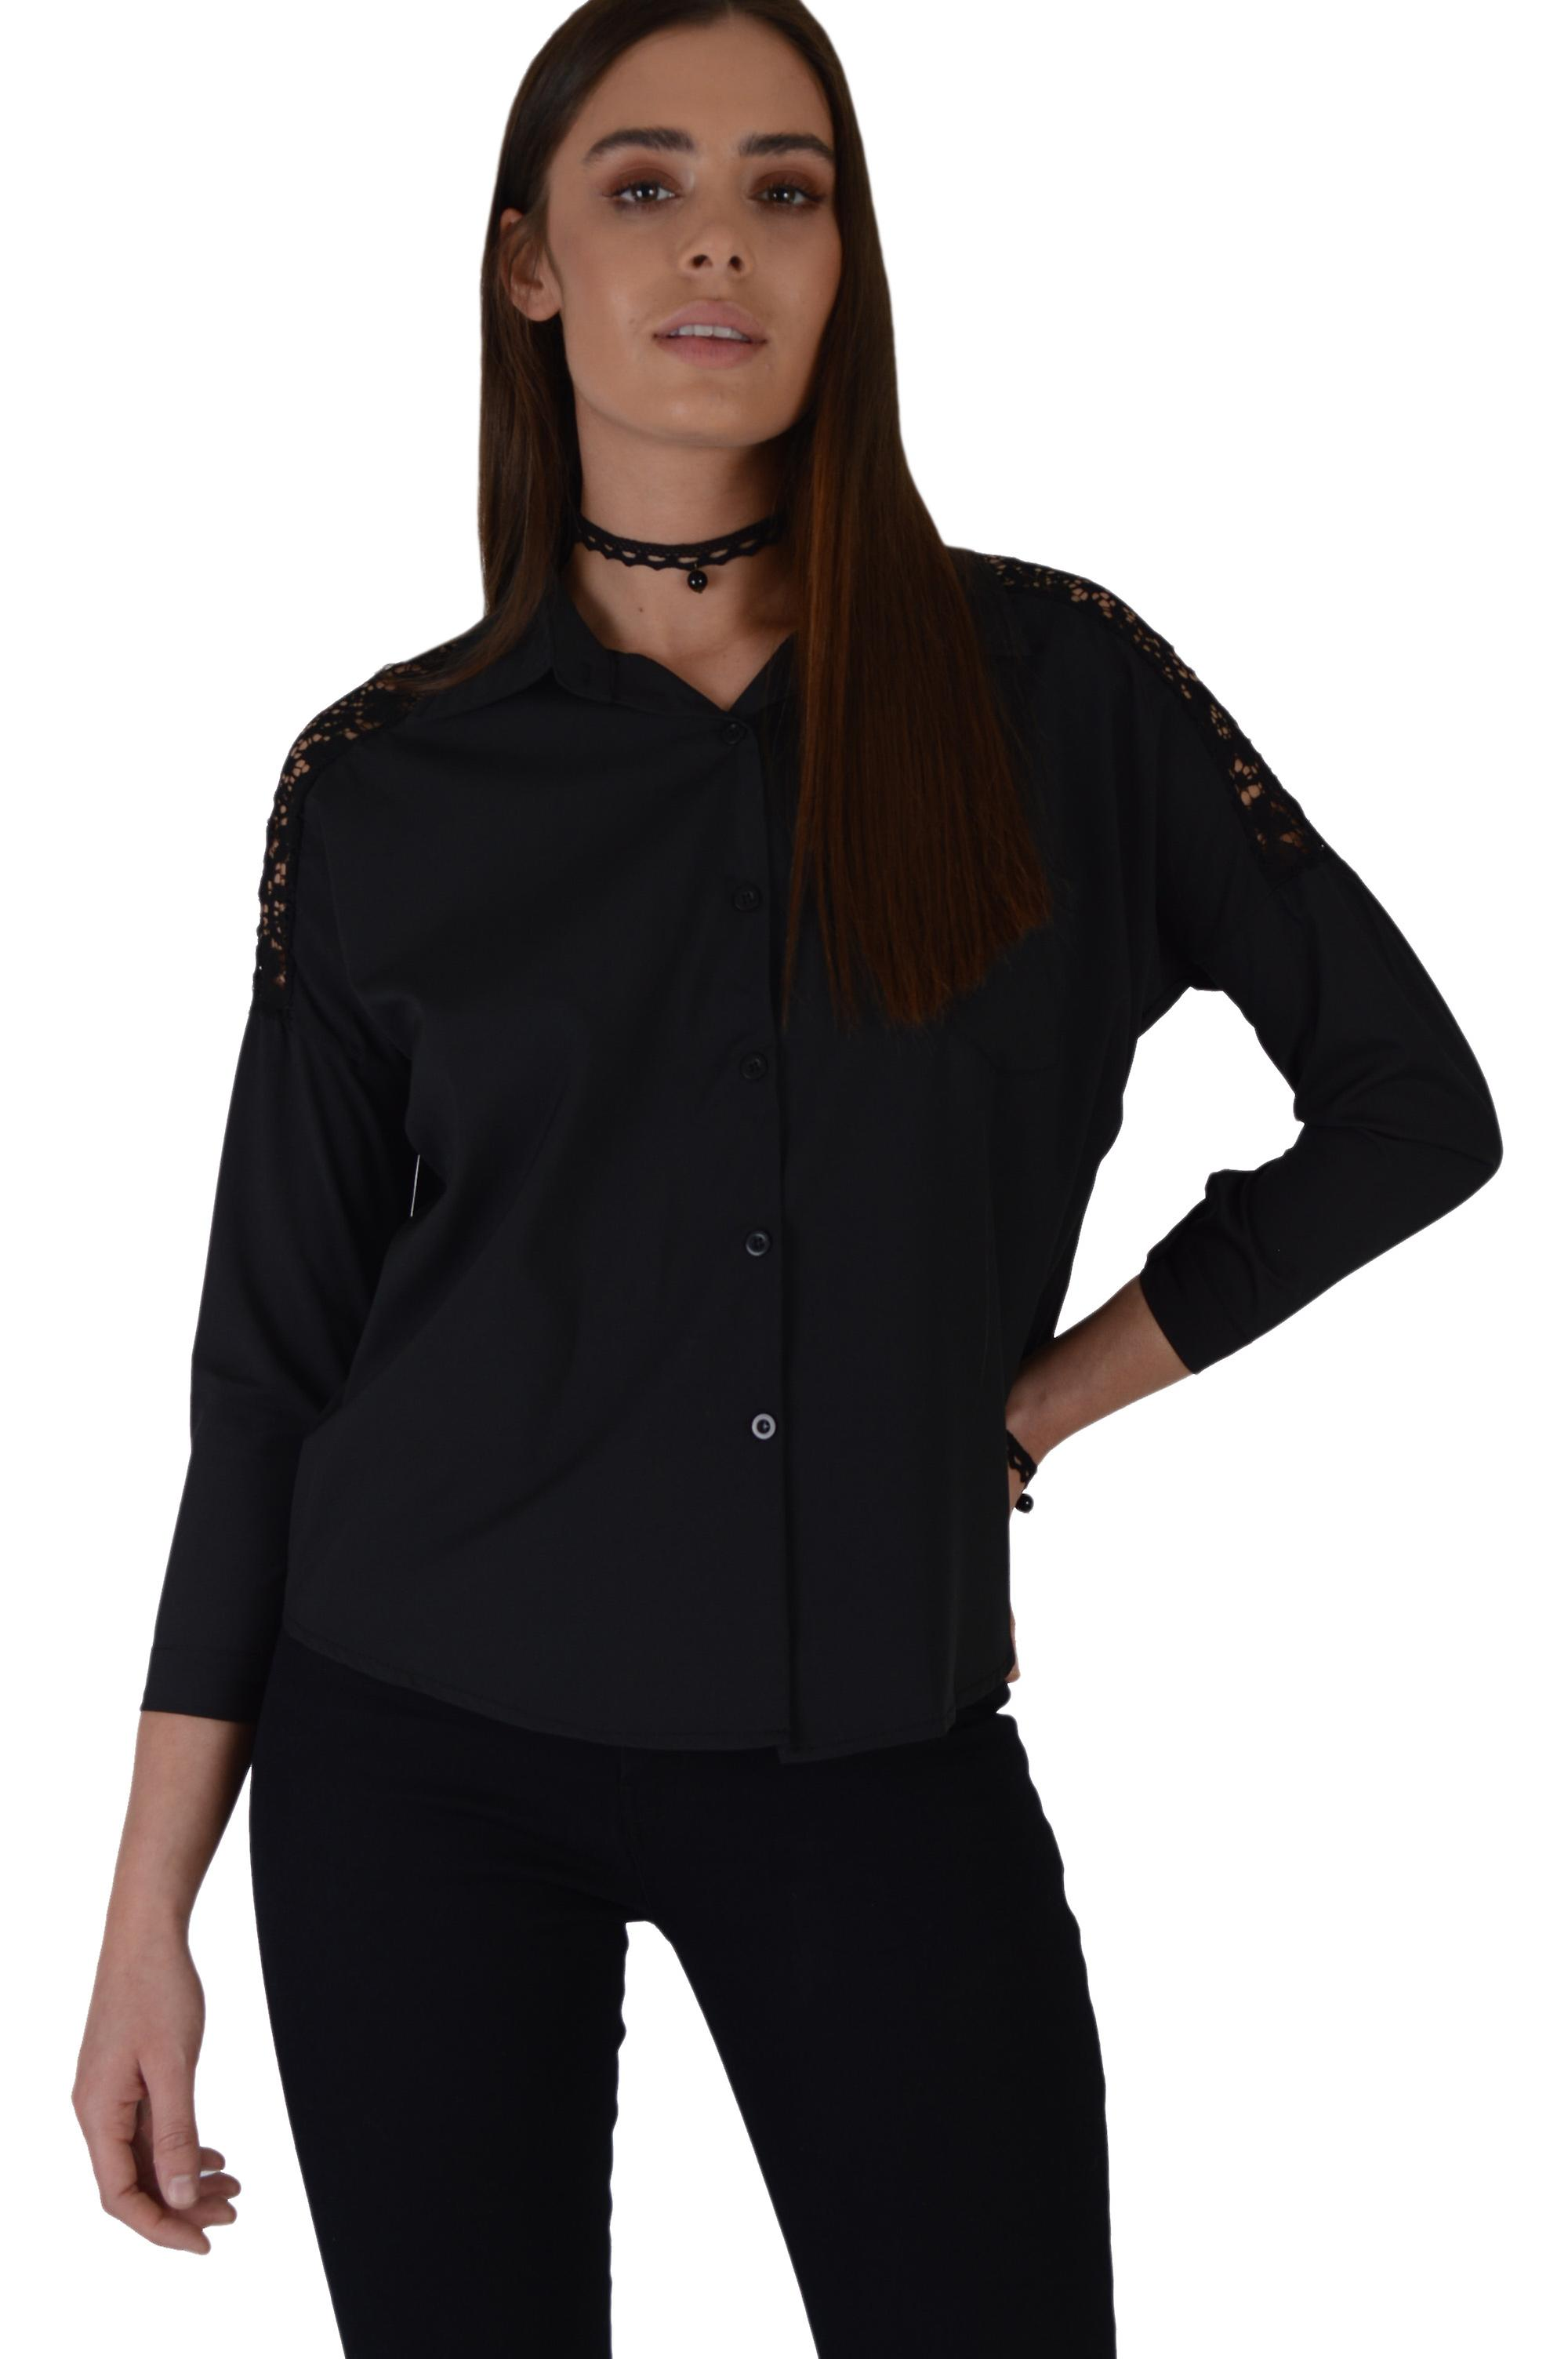 Lovemystyle Black Long Sleeved Shirt With Lace Inserts